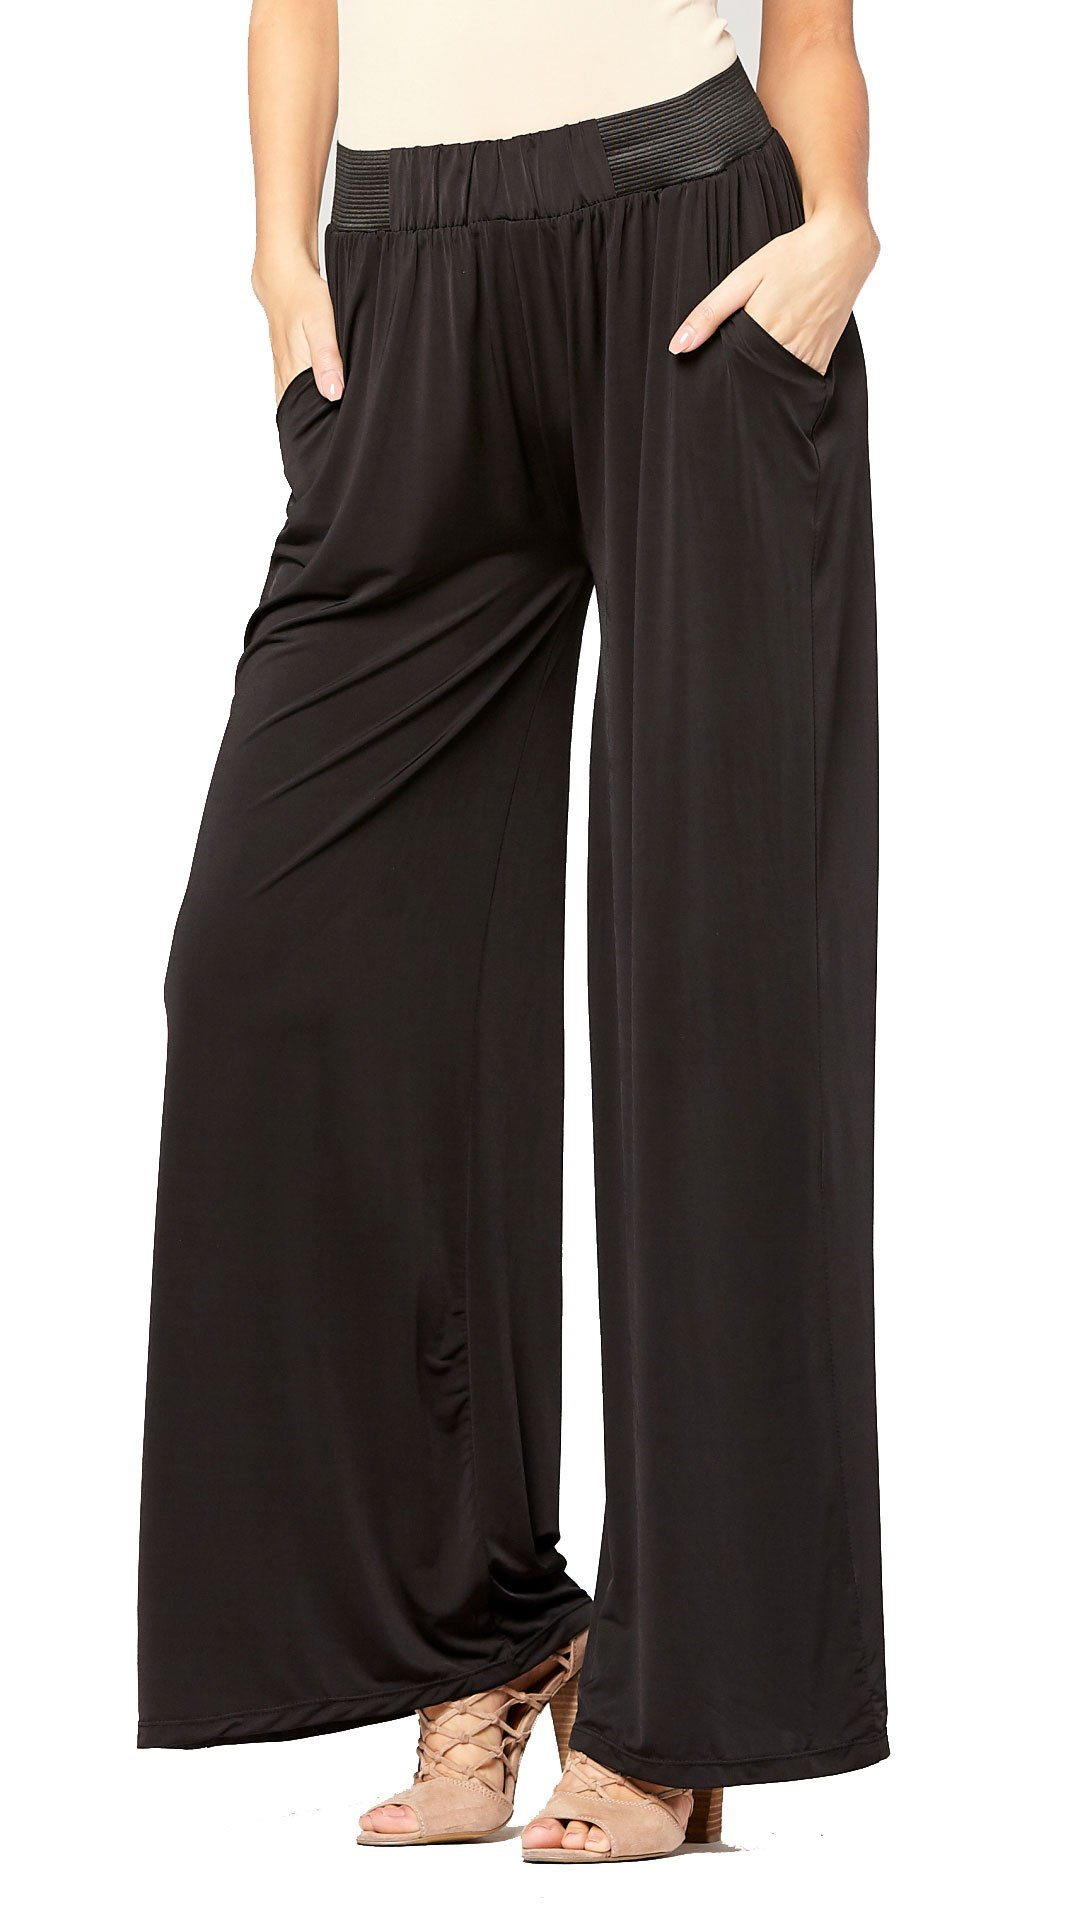 Conceited Palazzo Pants with Pockets in Several Colors and Printed Designs by (Solid Black)